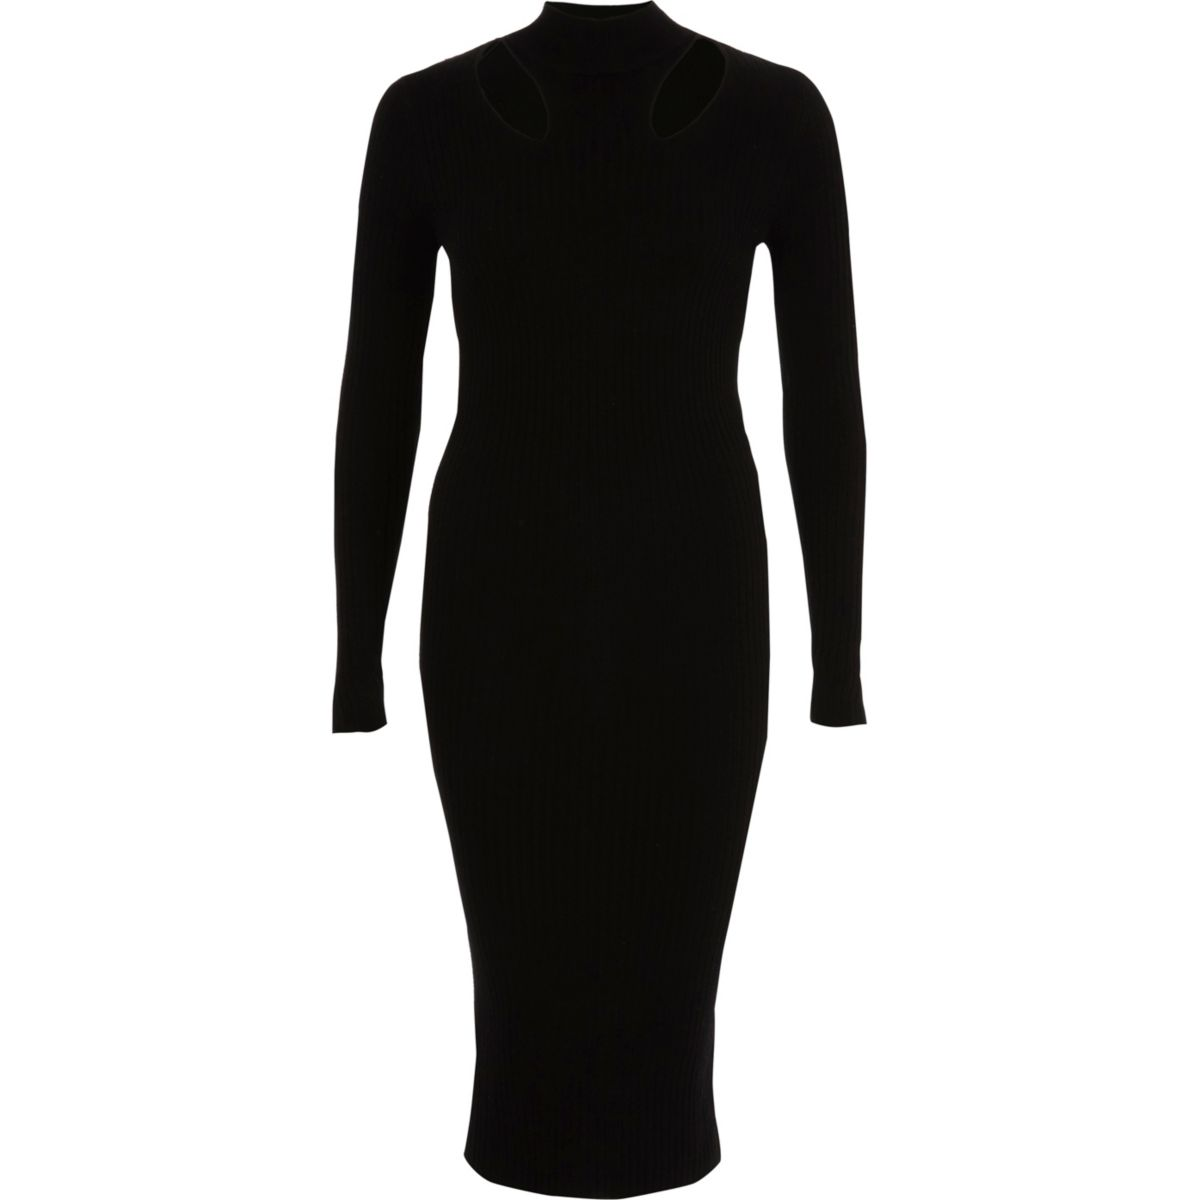 Black ribbed high neck bodycon midi dress